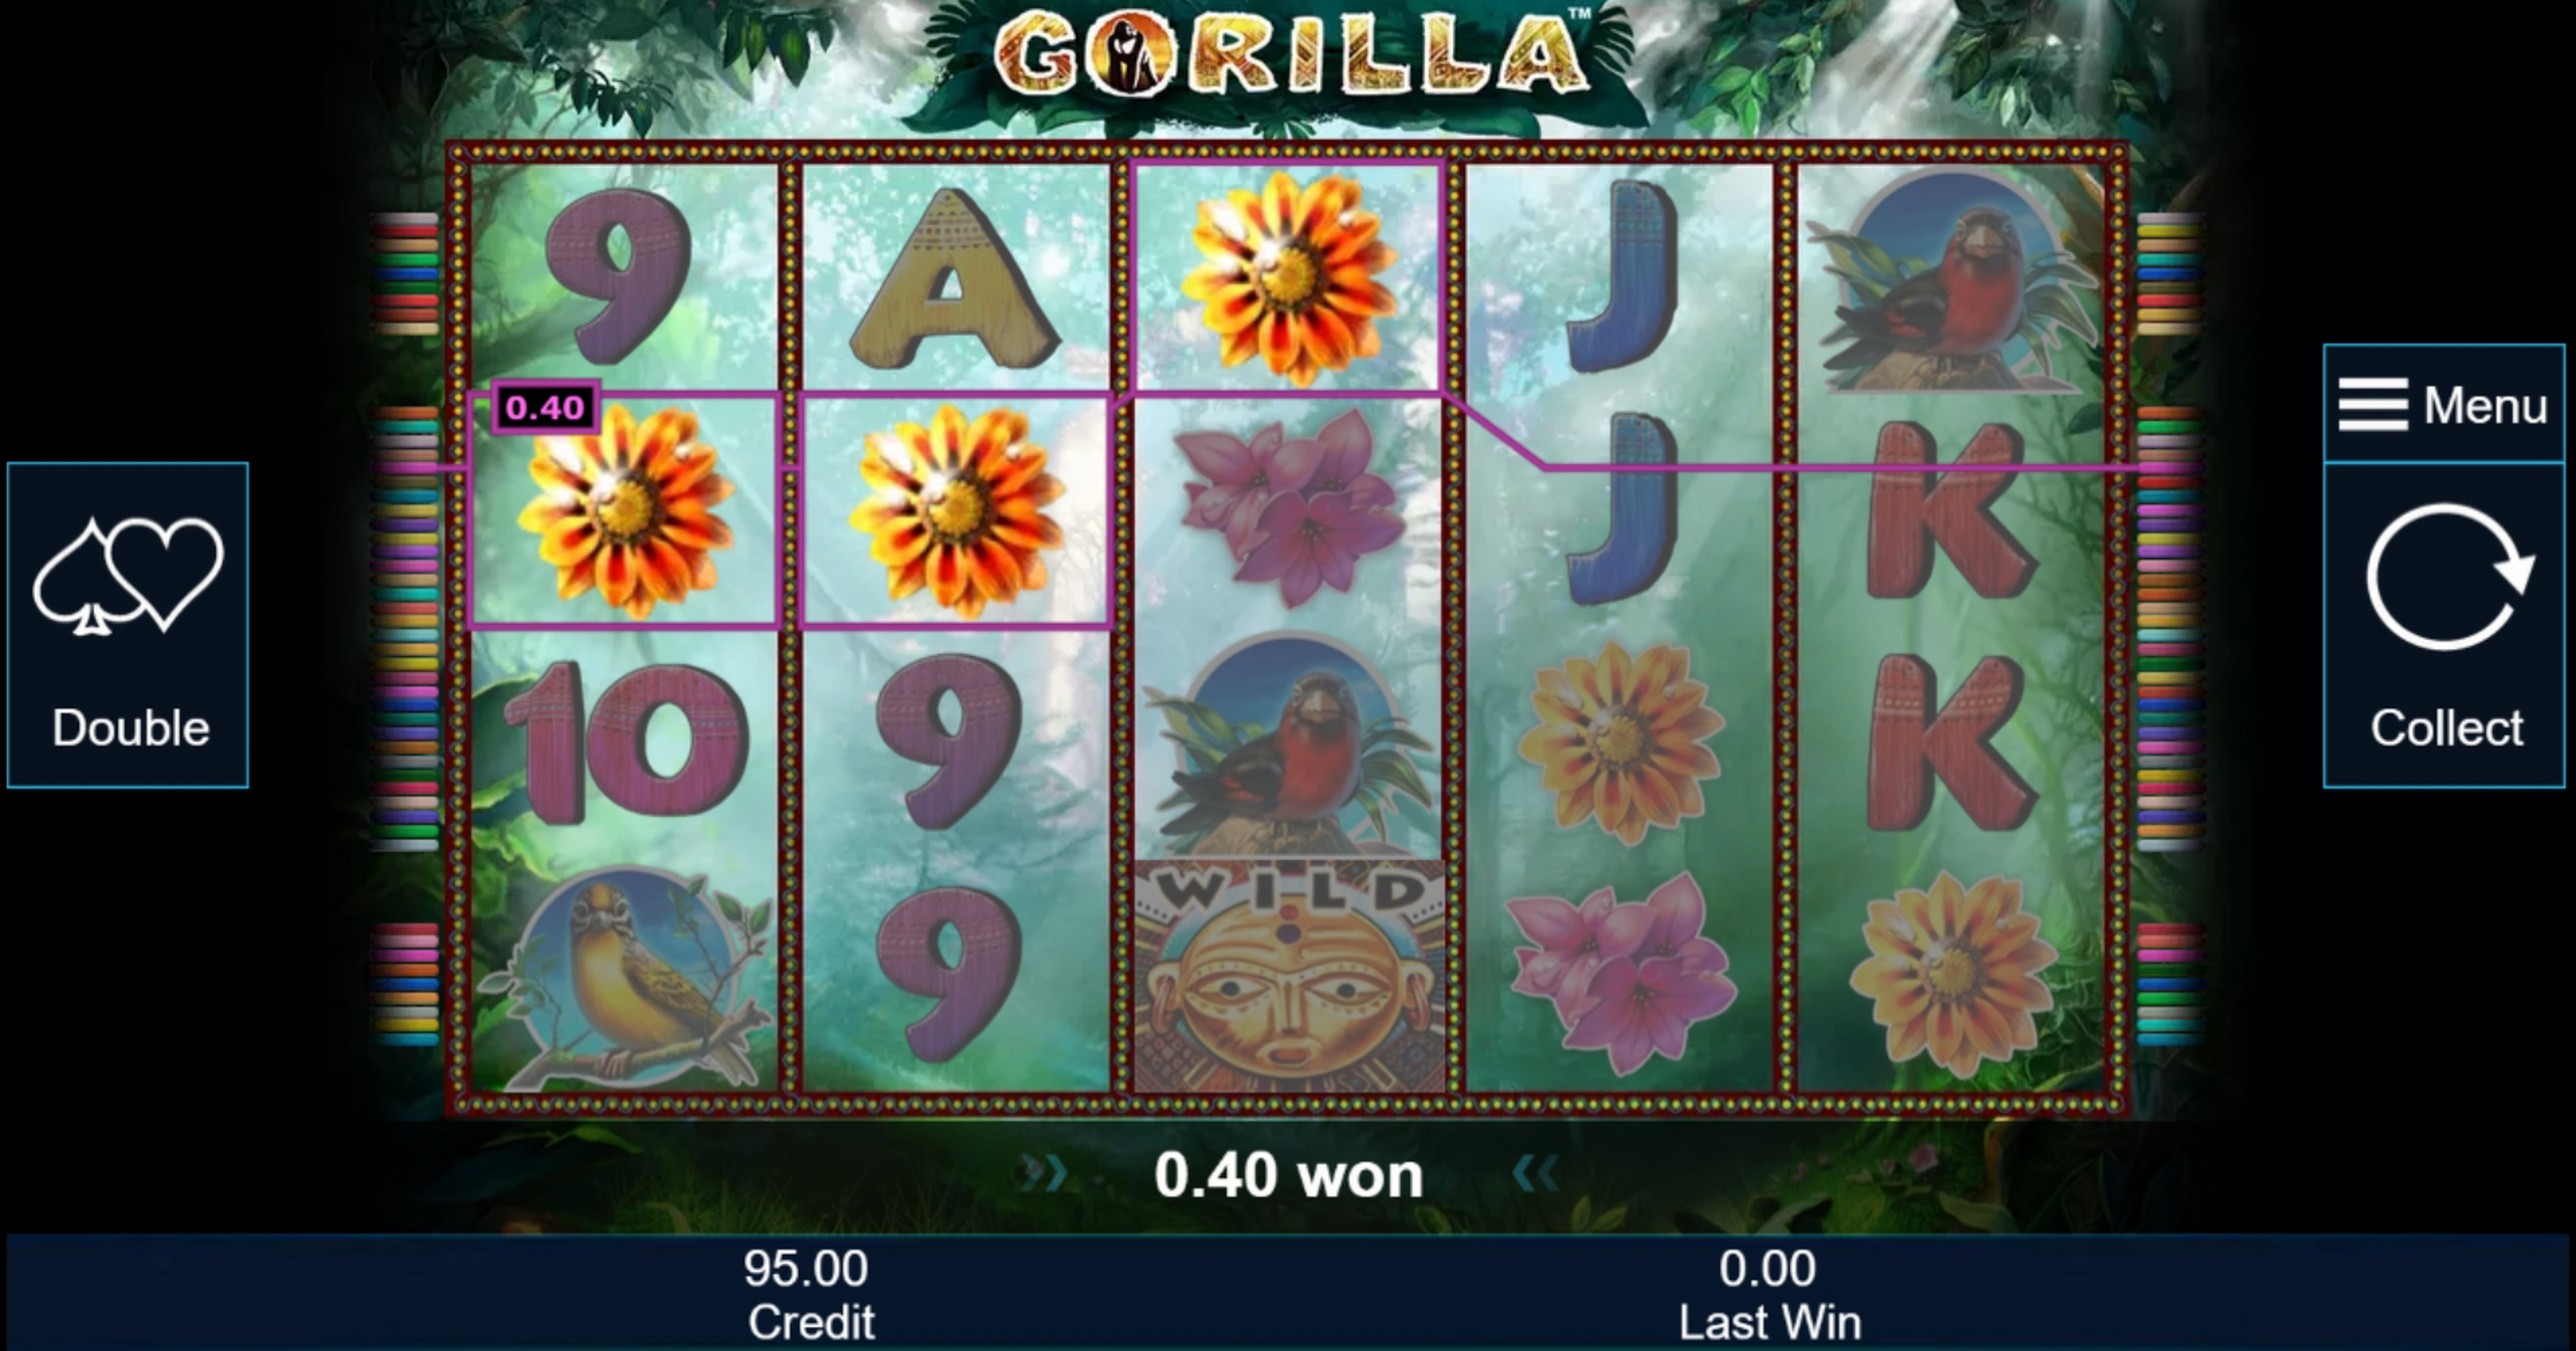 Win Money in Gorilla Free Slot Game by Greentube